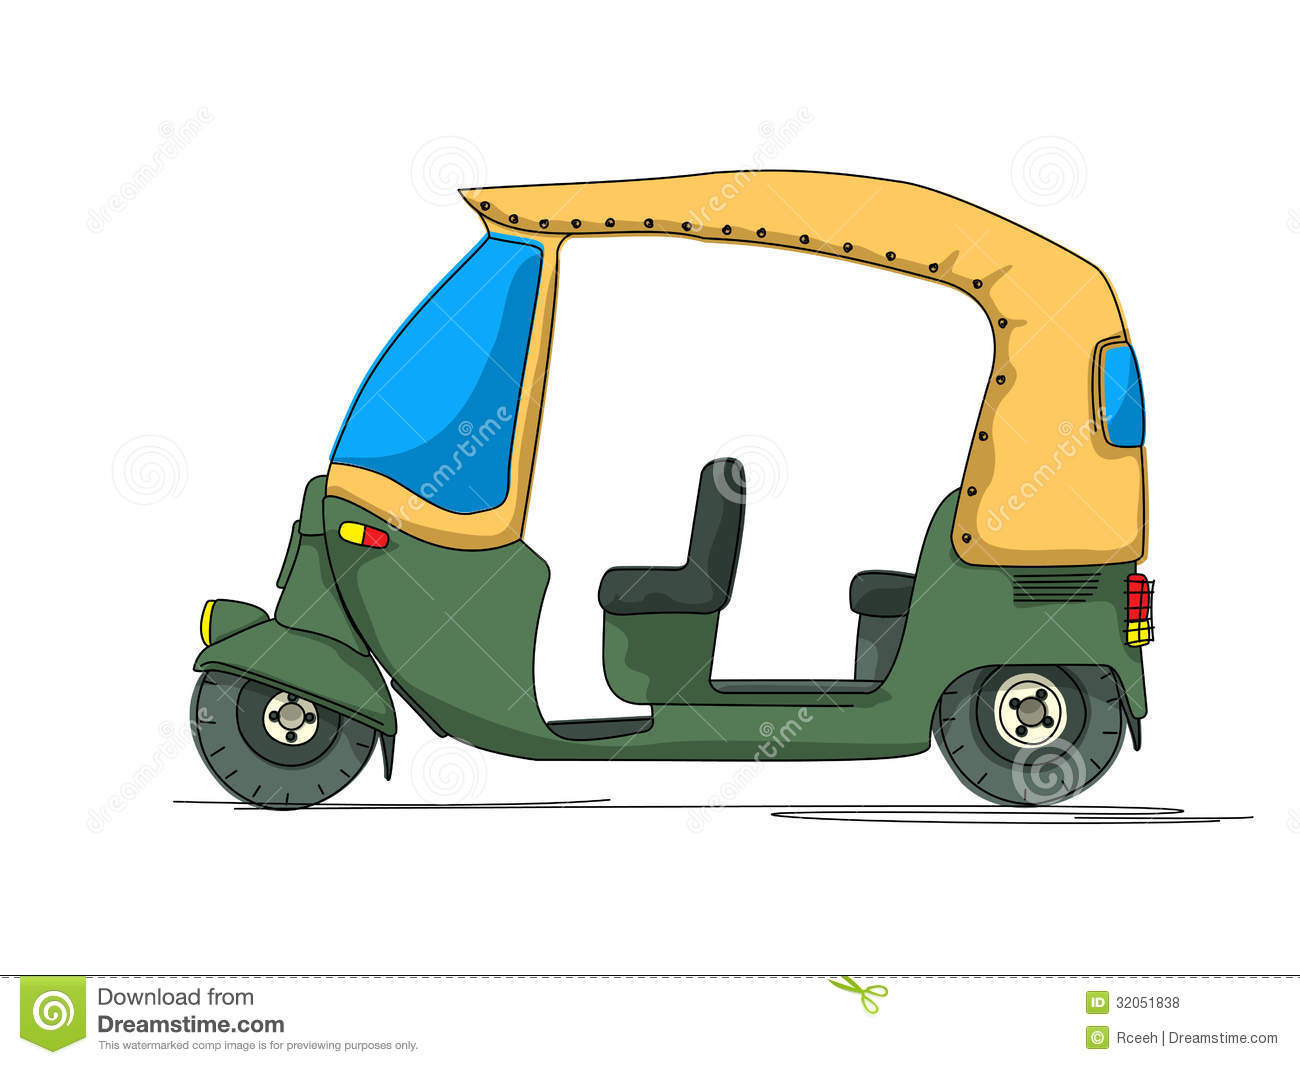 Royalty free stock photos rickshaw cartoon